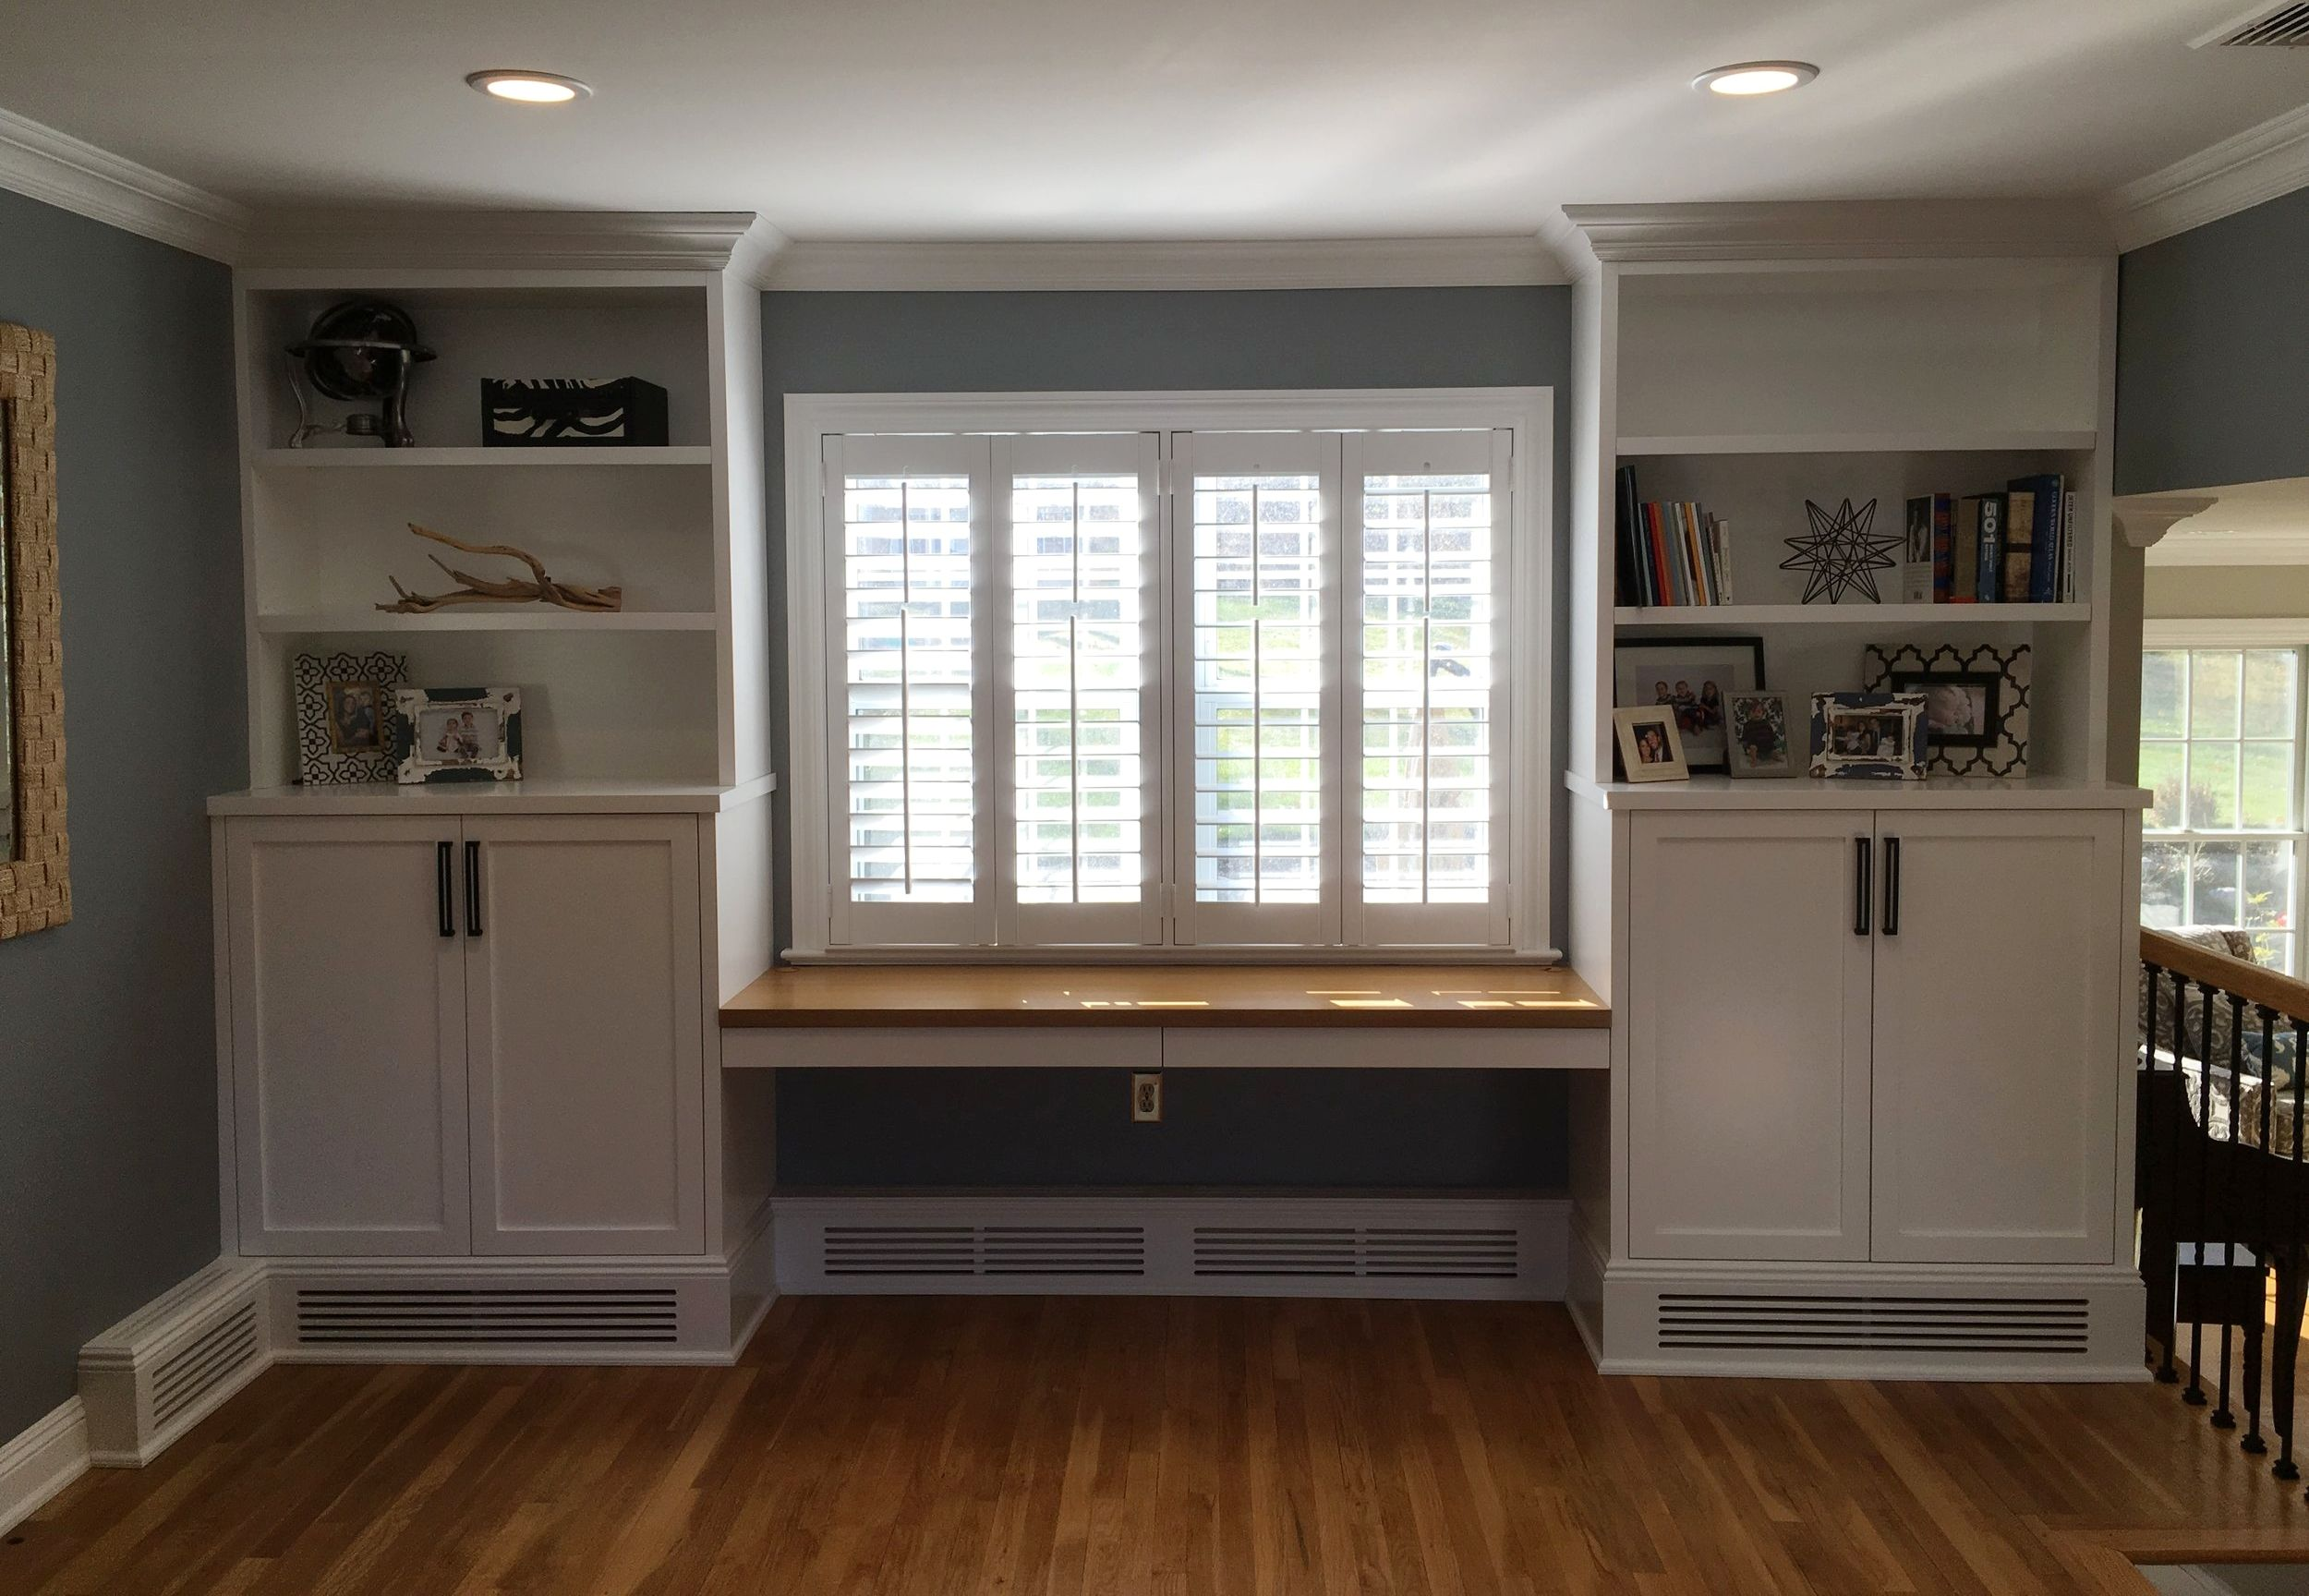 Gallery Fine Point Living Room Makeover Kitchen Cabinets Baseboard Heating